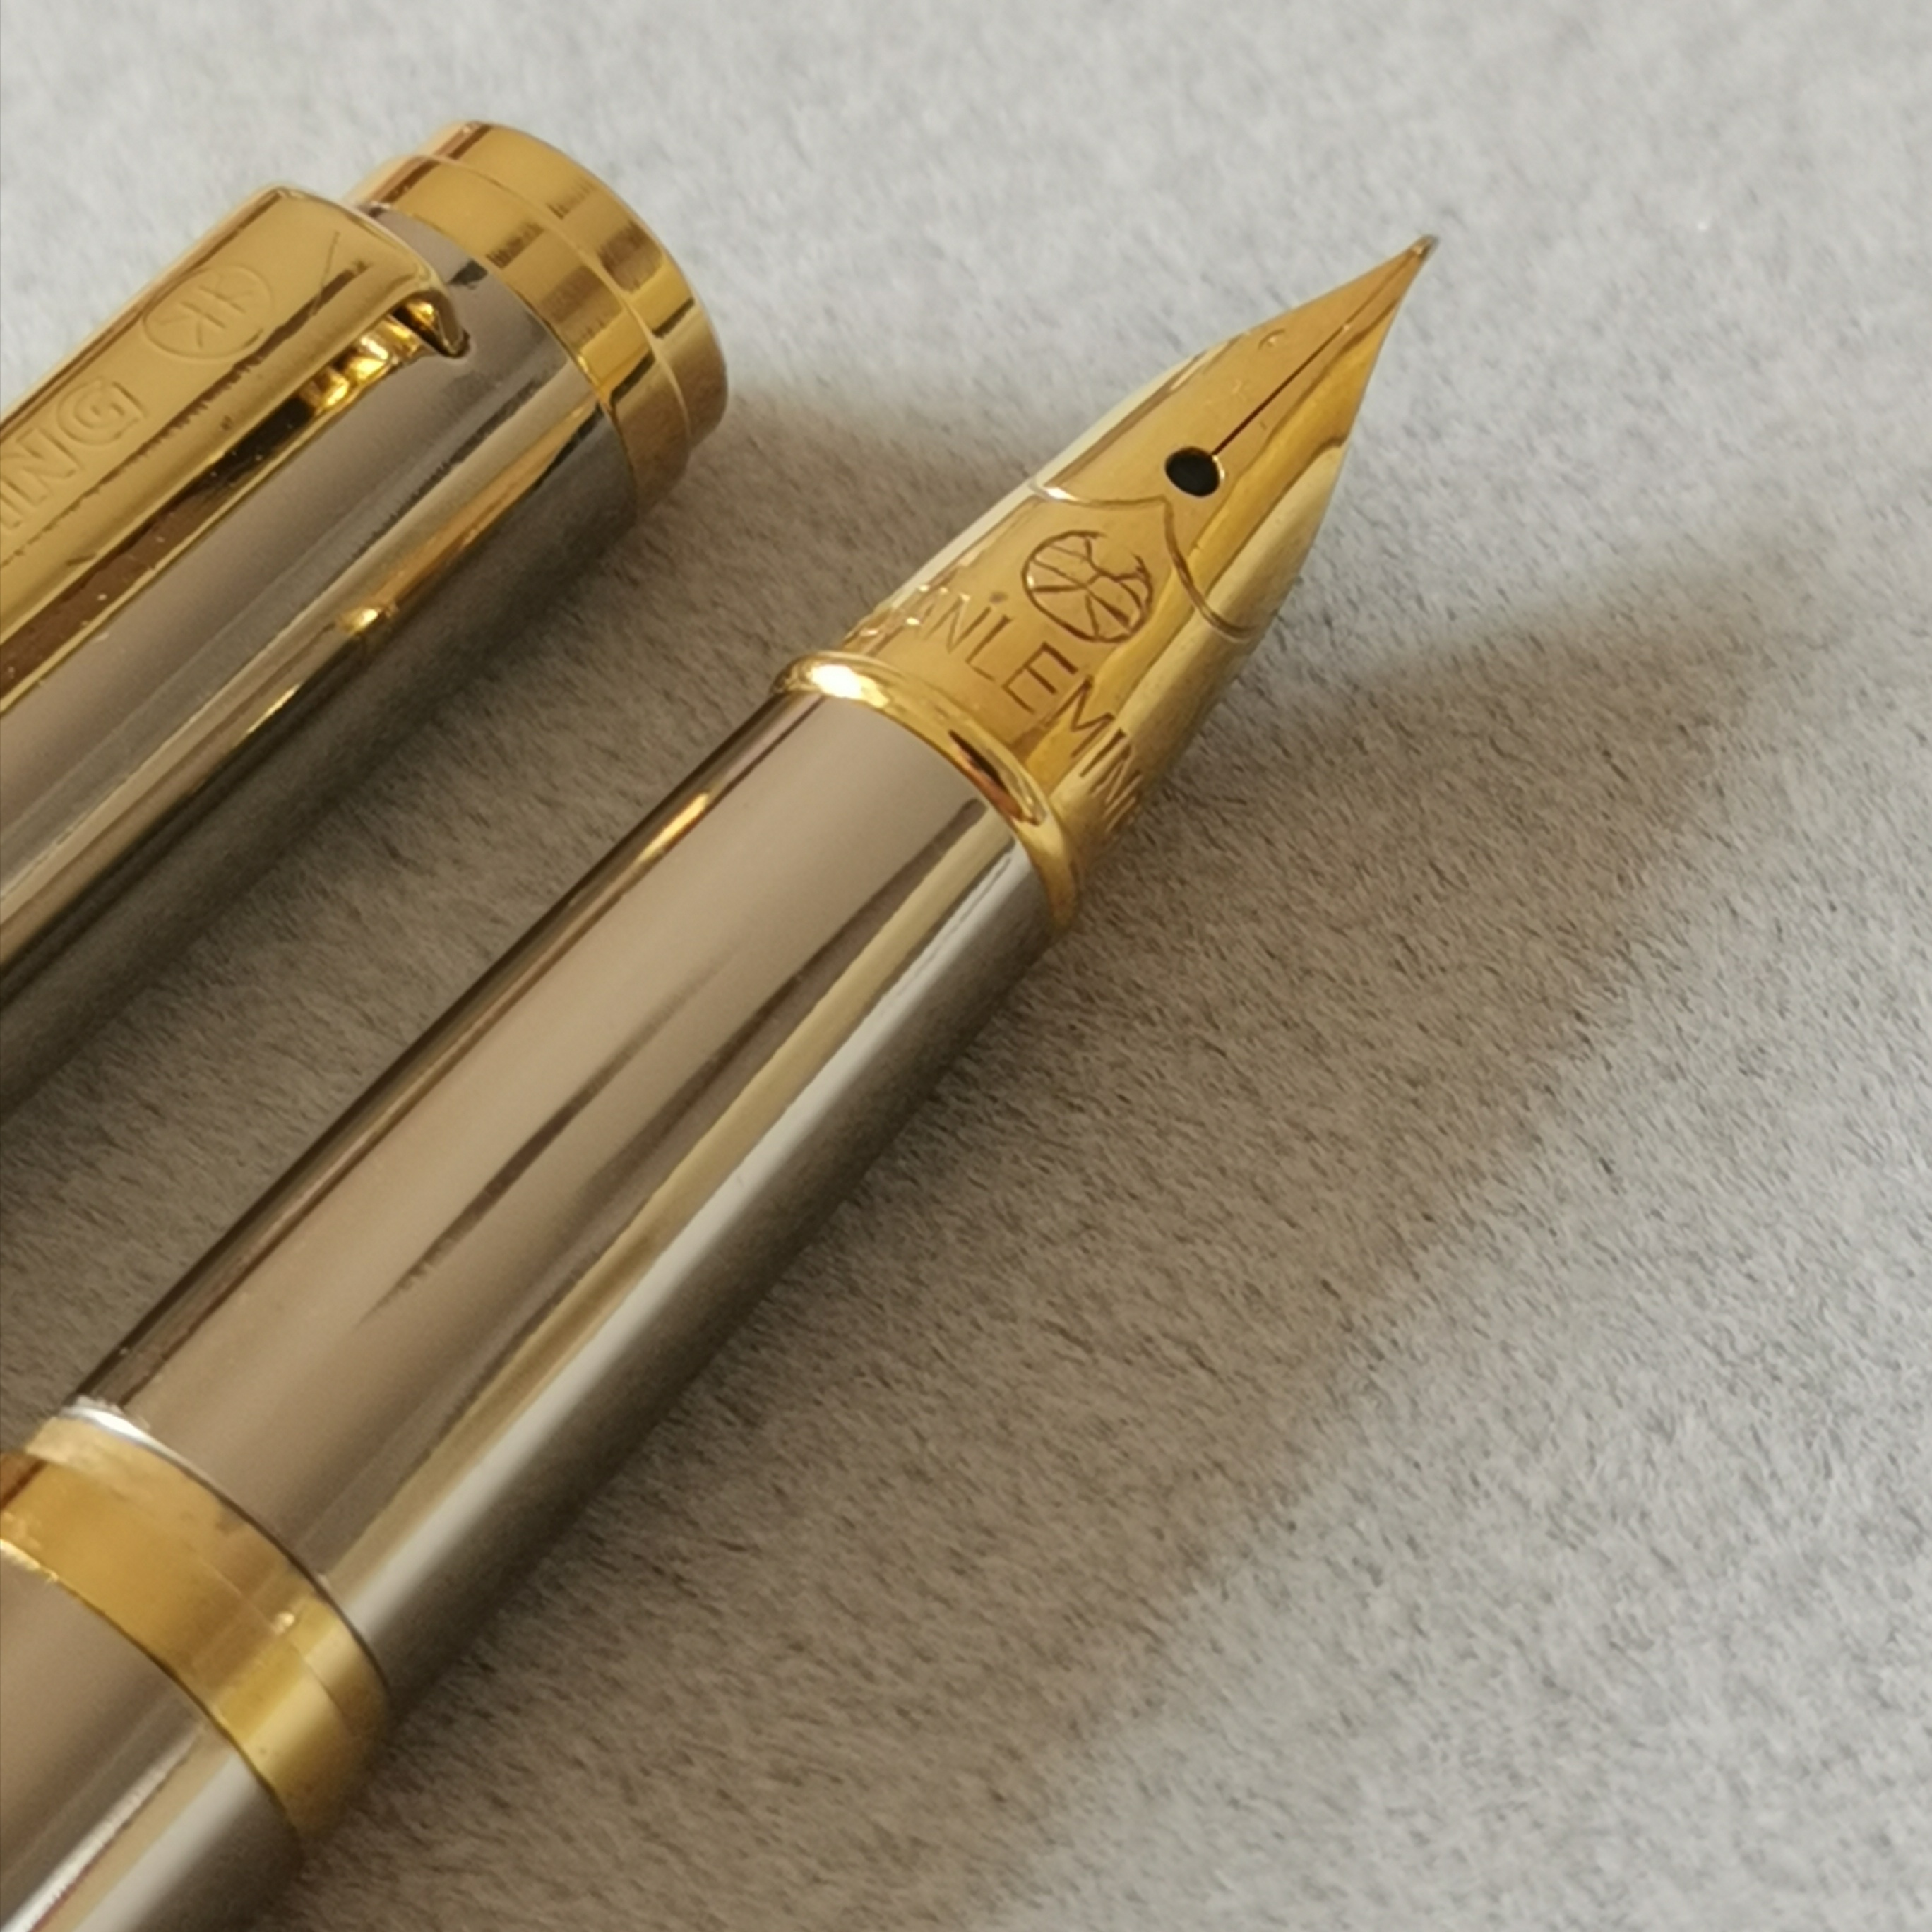 Rare Old Stock 1Pc GLM Fountain Pen Ink Pen Gold Trim Aerometric Pen 1998S Stationery Office School Supplies